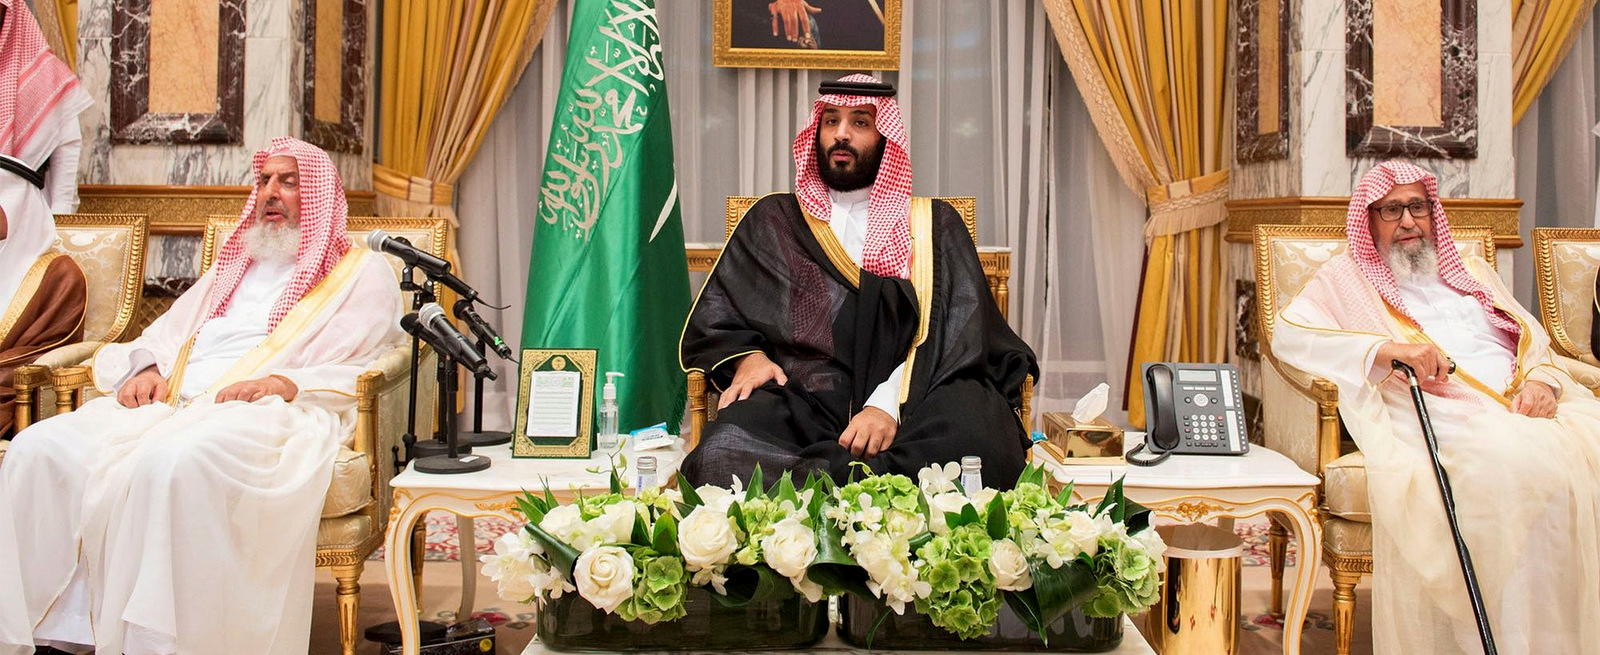 The Saudi Religious Establishment Pushes Normalizing Relations With Israel